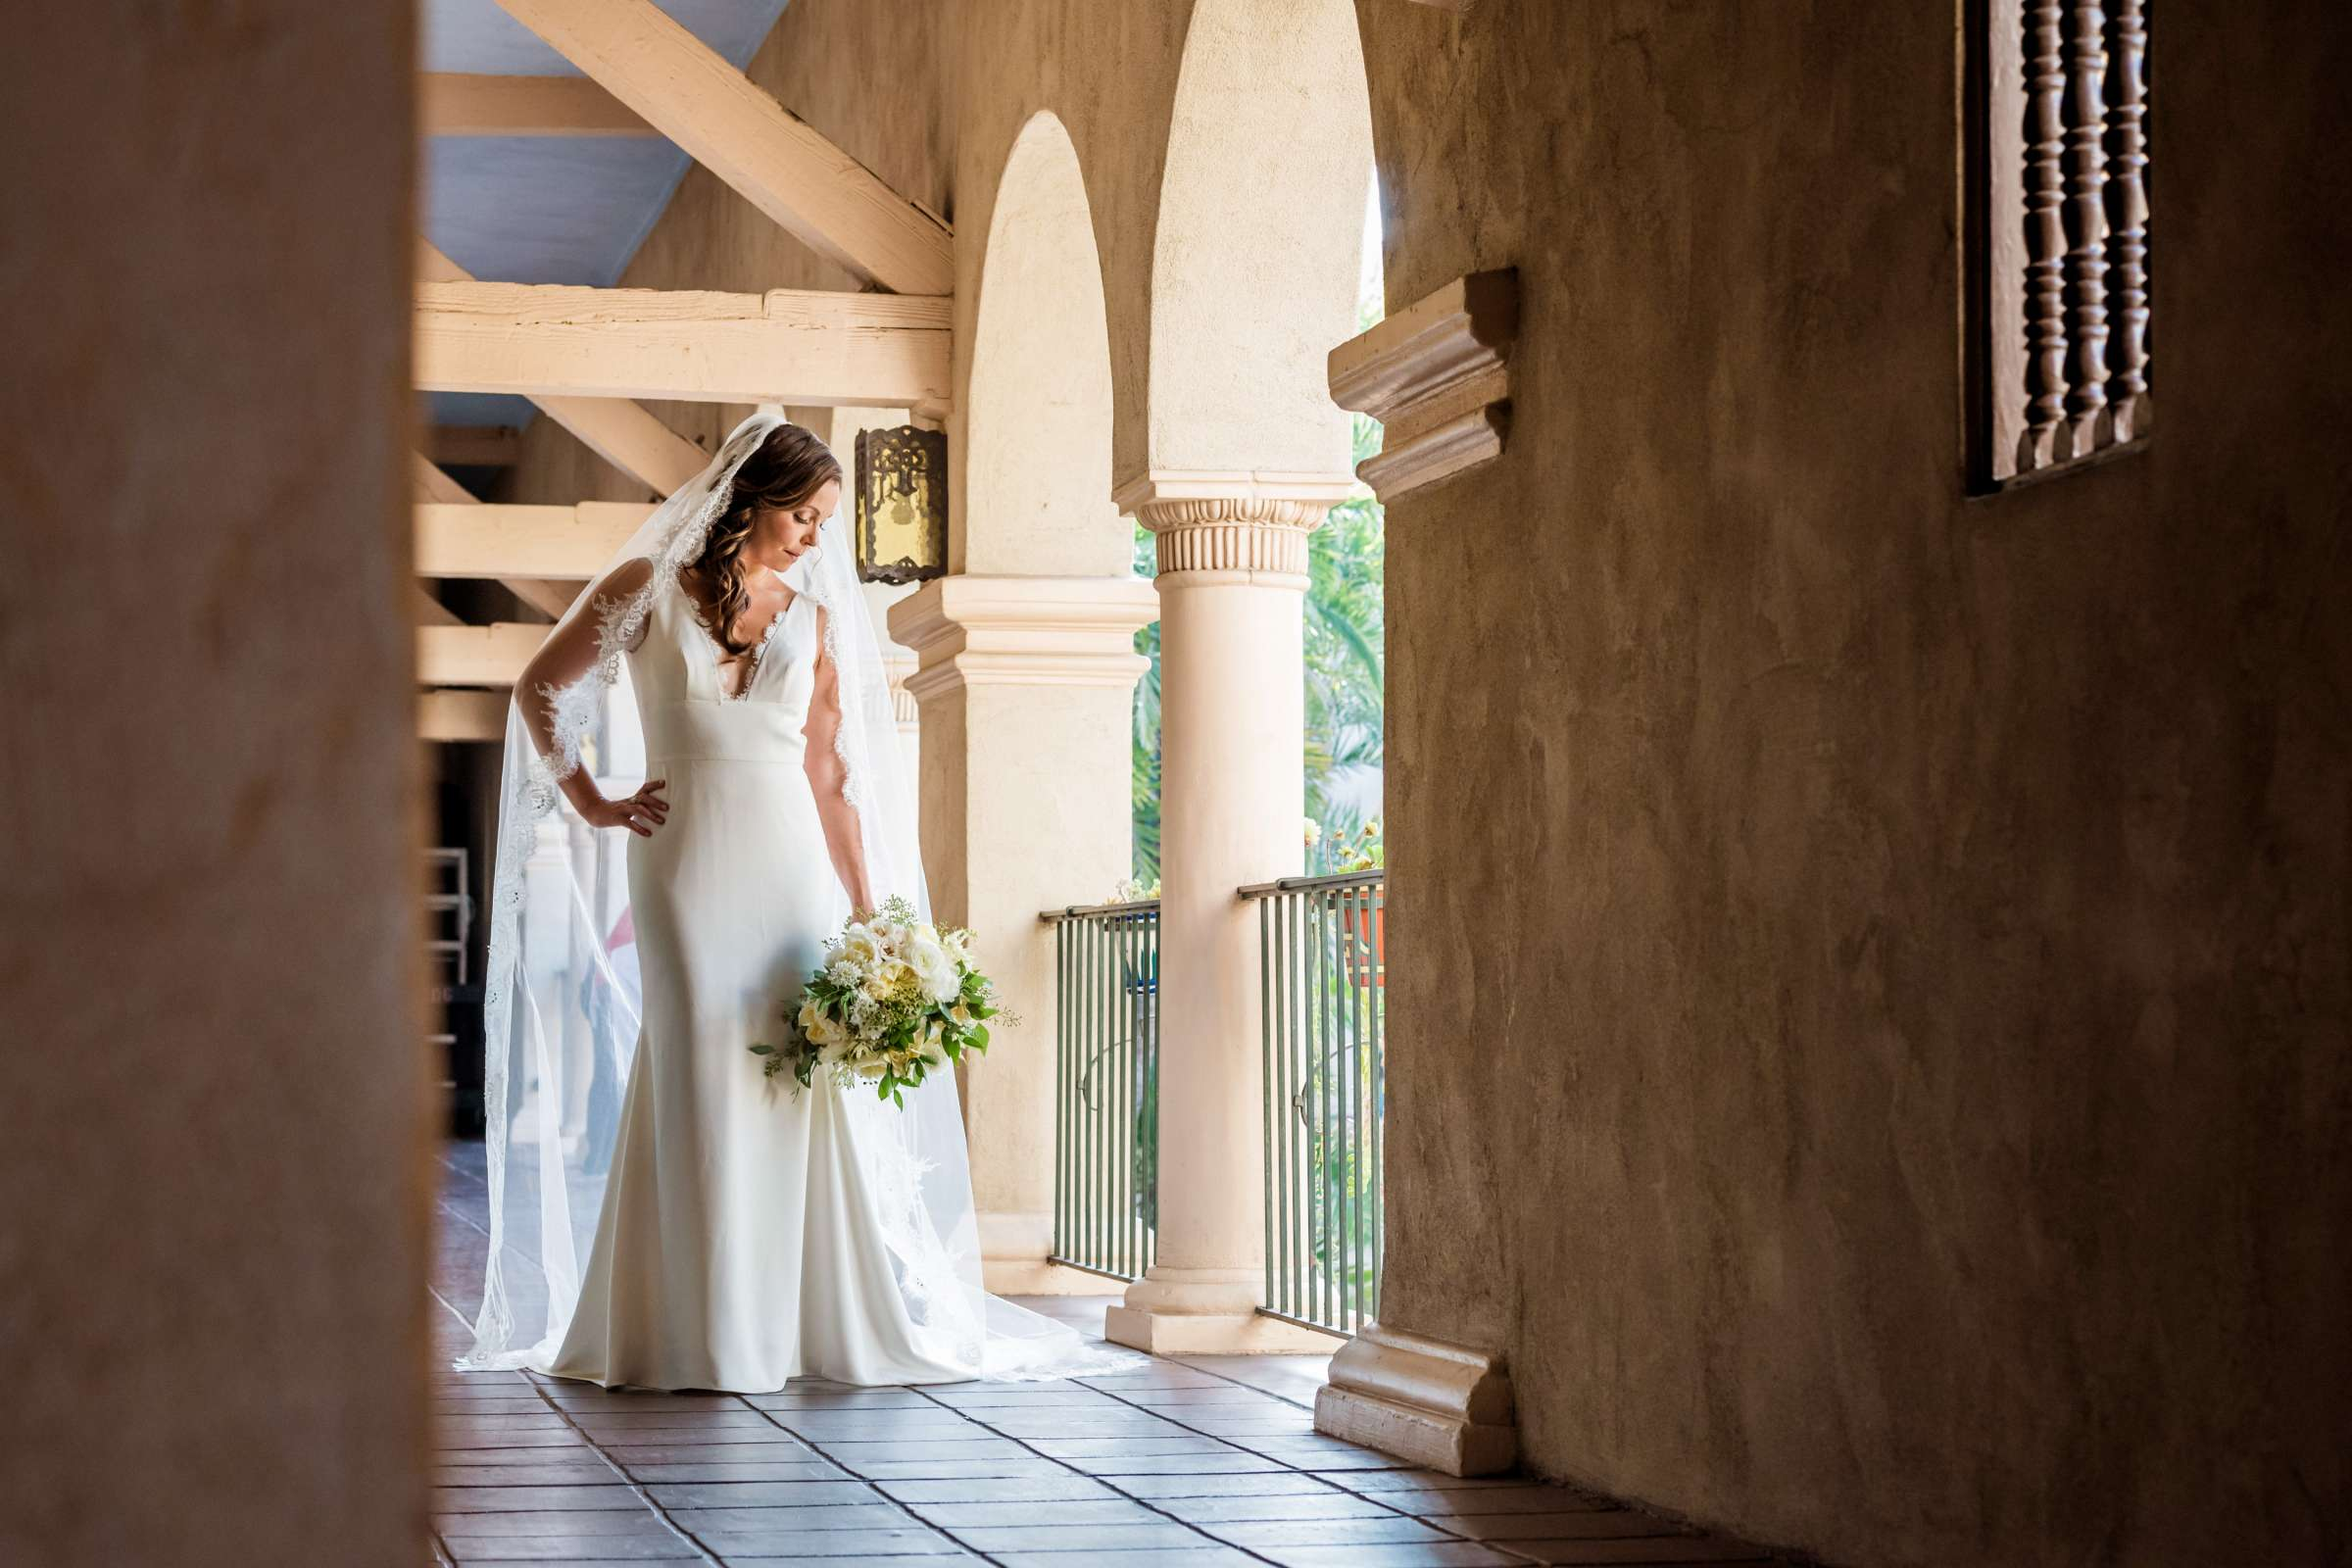 The Prado Wedding coordinated by I Do Weddings, Melissa and Stewart Wedding Photo #9 by True Photography